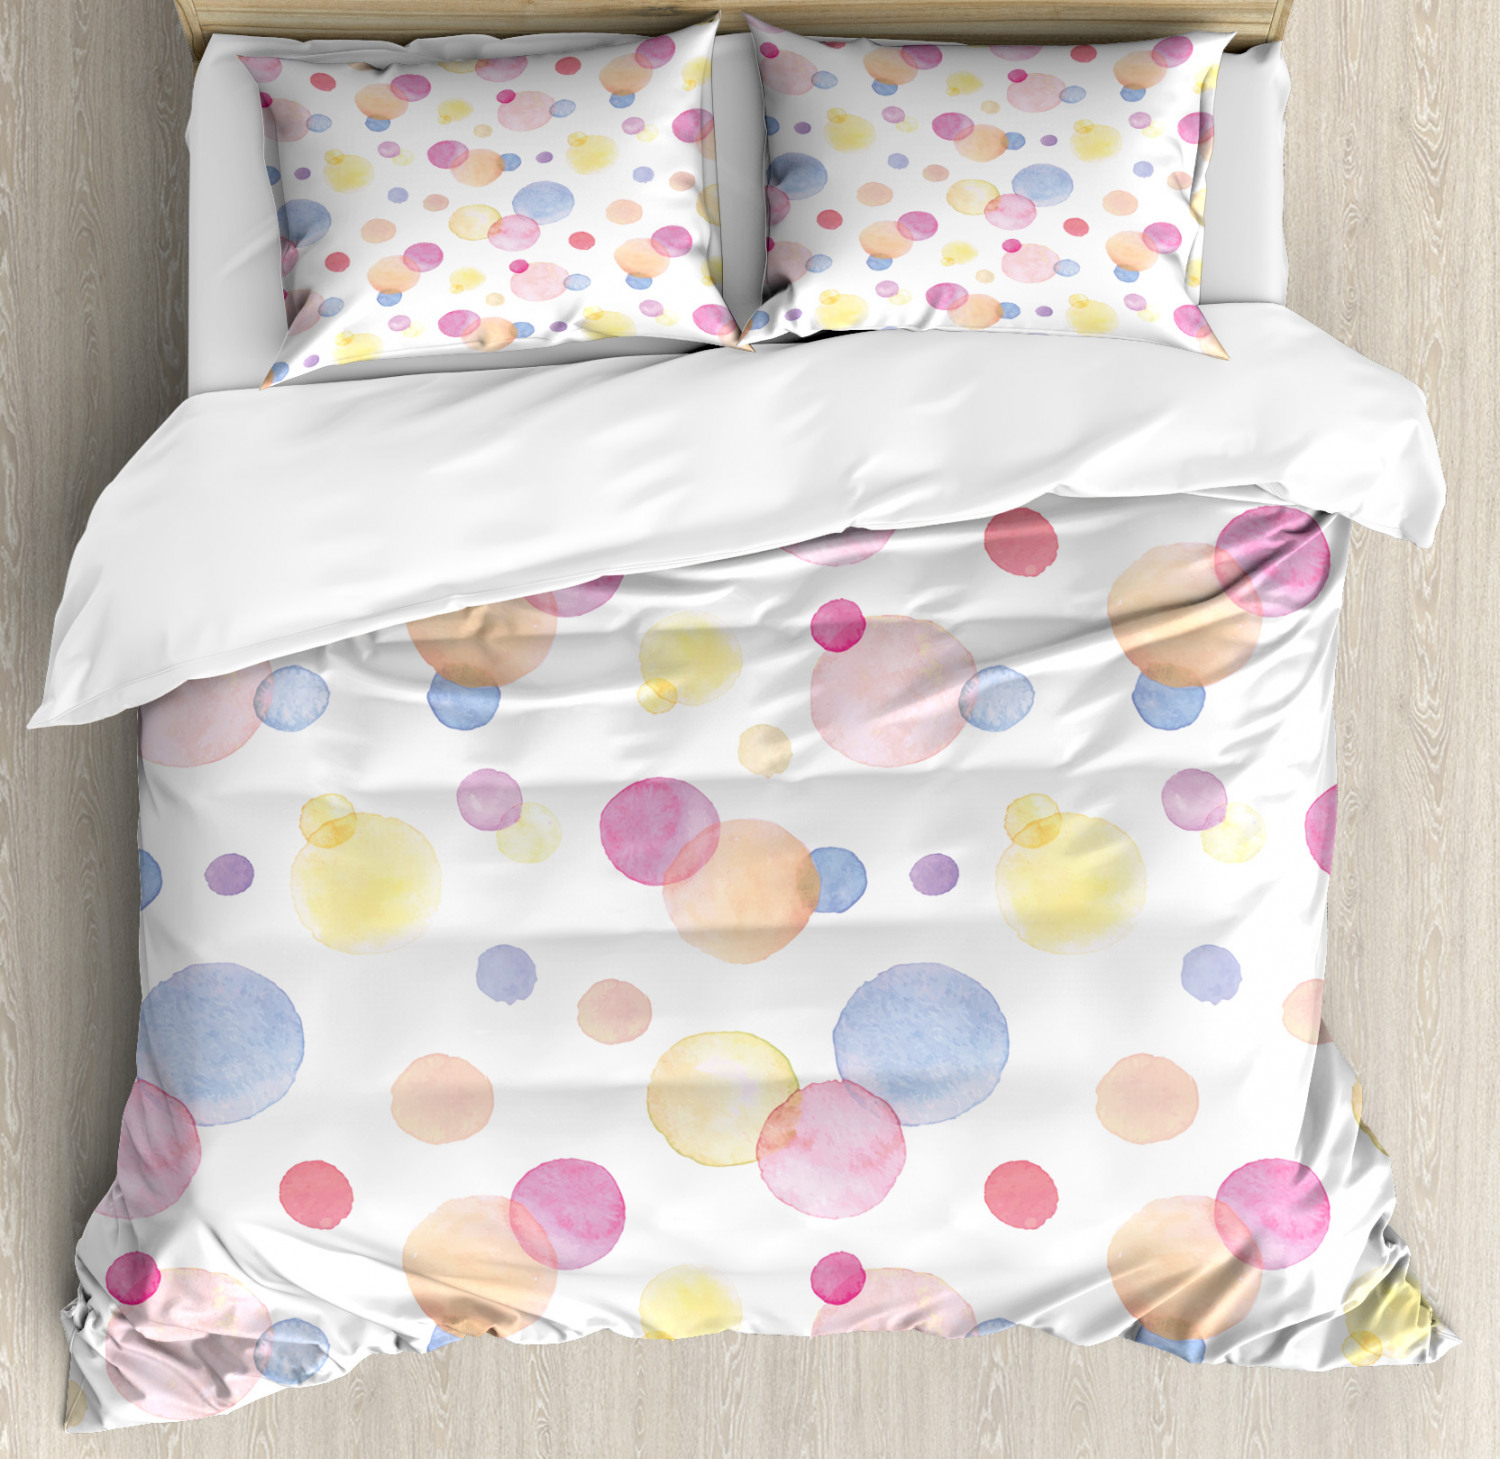 Pastel Duvet Cover Set with Pillow Shams Watercolor Drops Artful Print